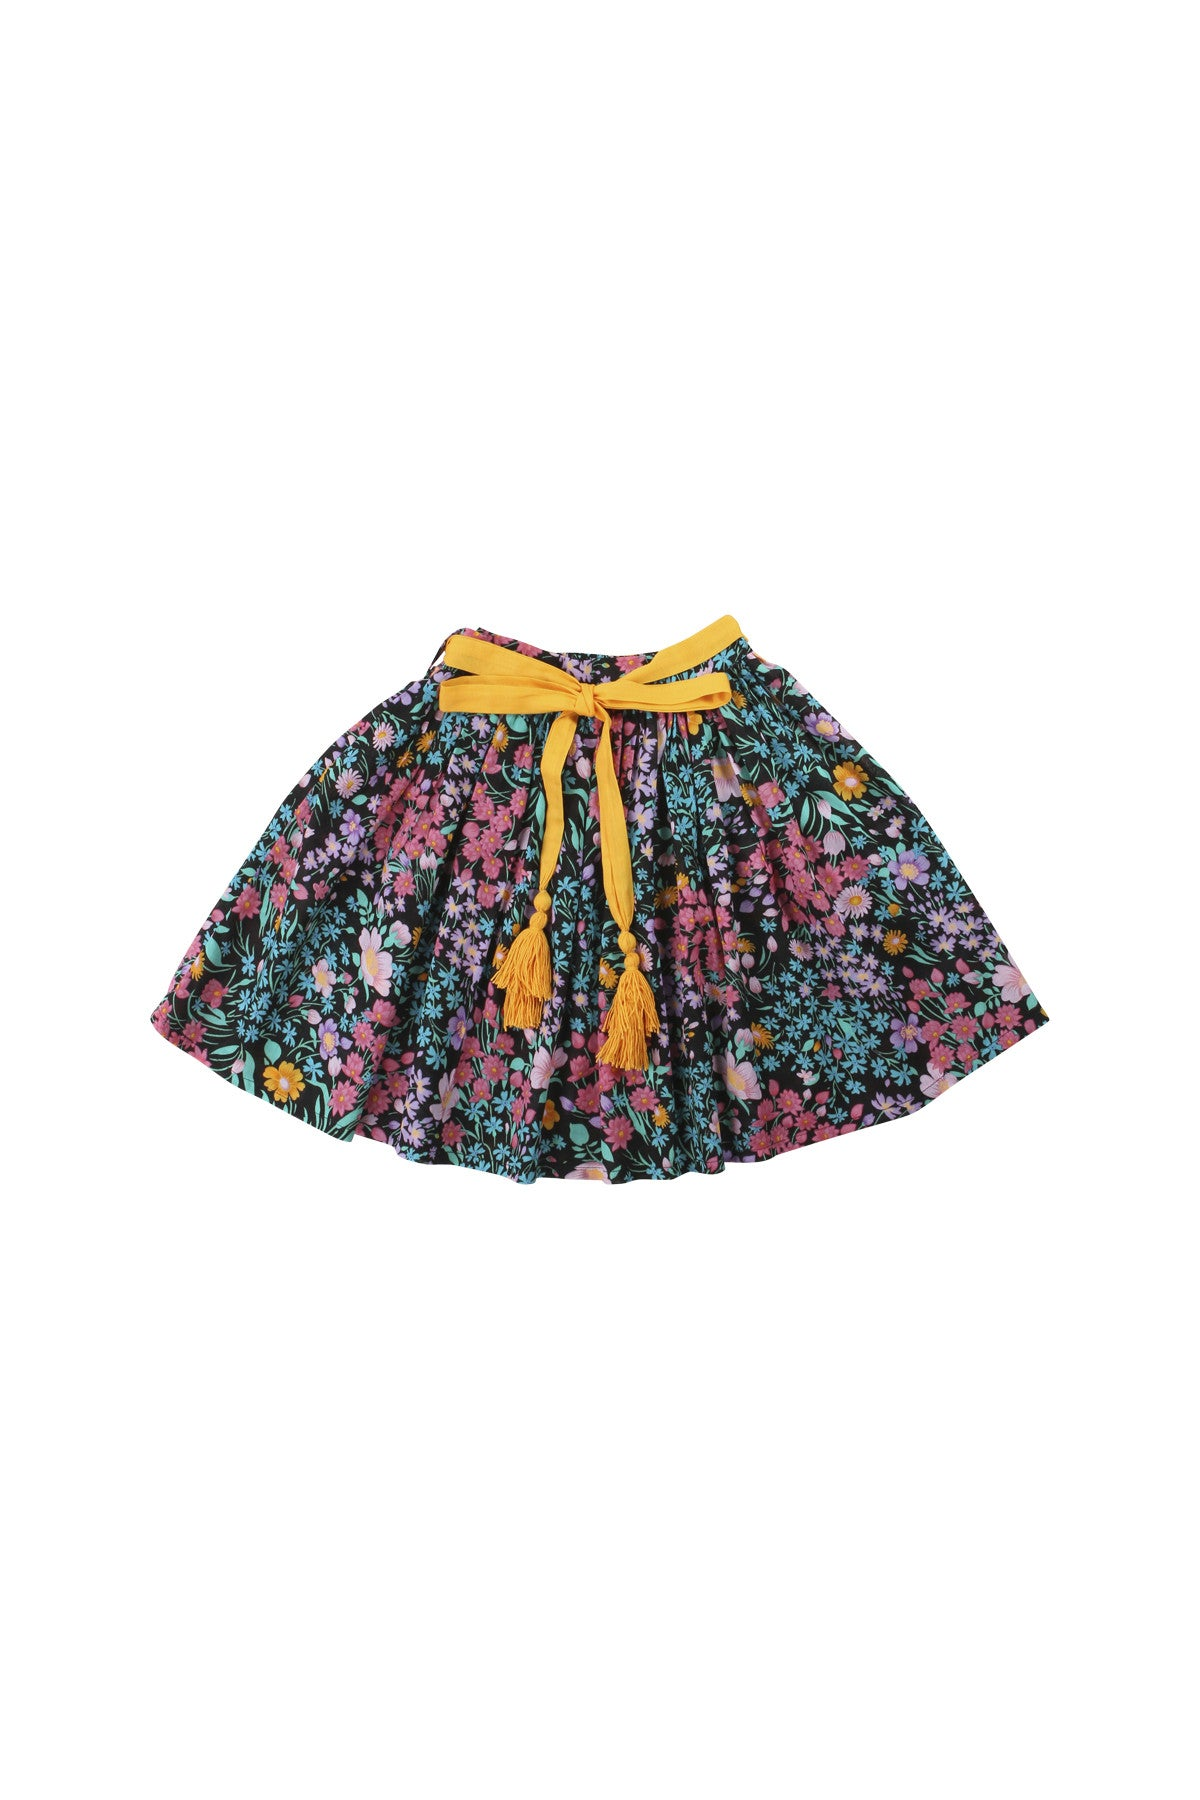 kahlo skirt paris gypsy black